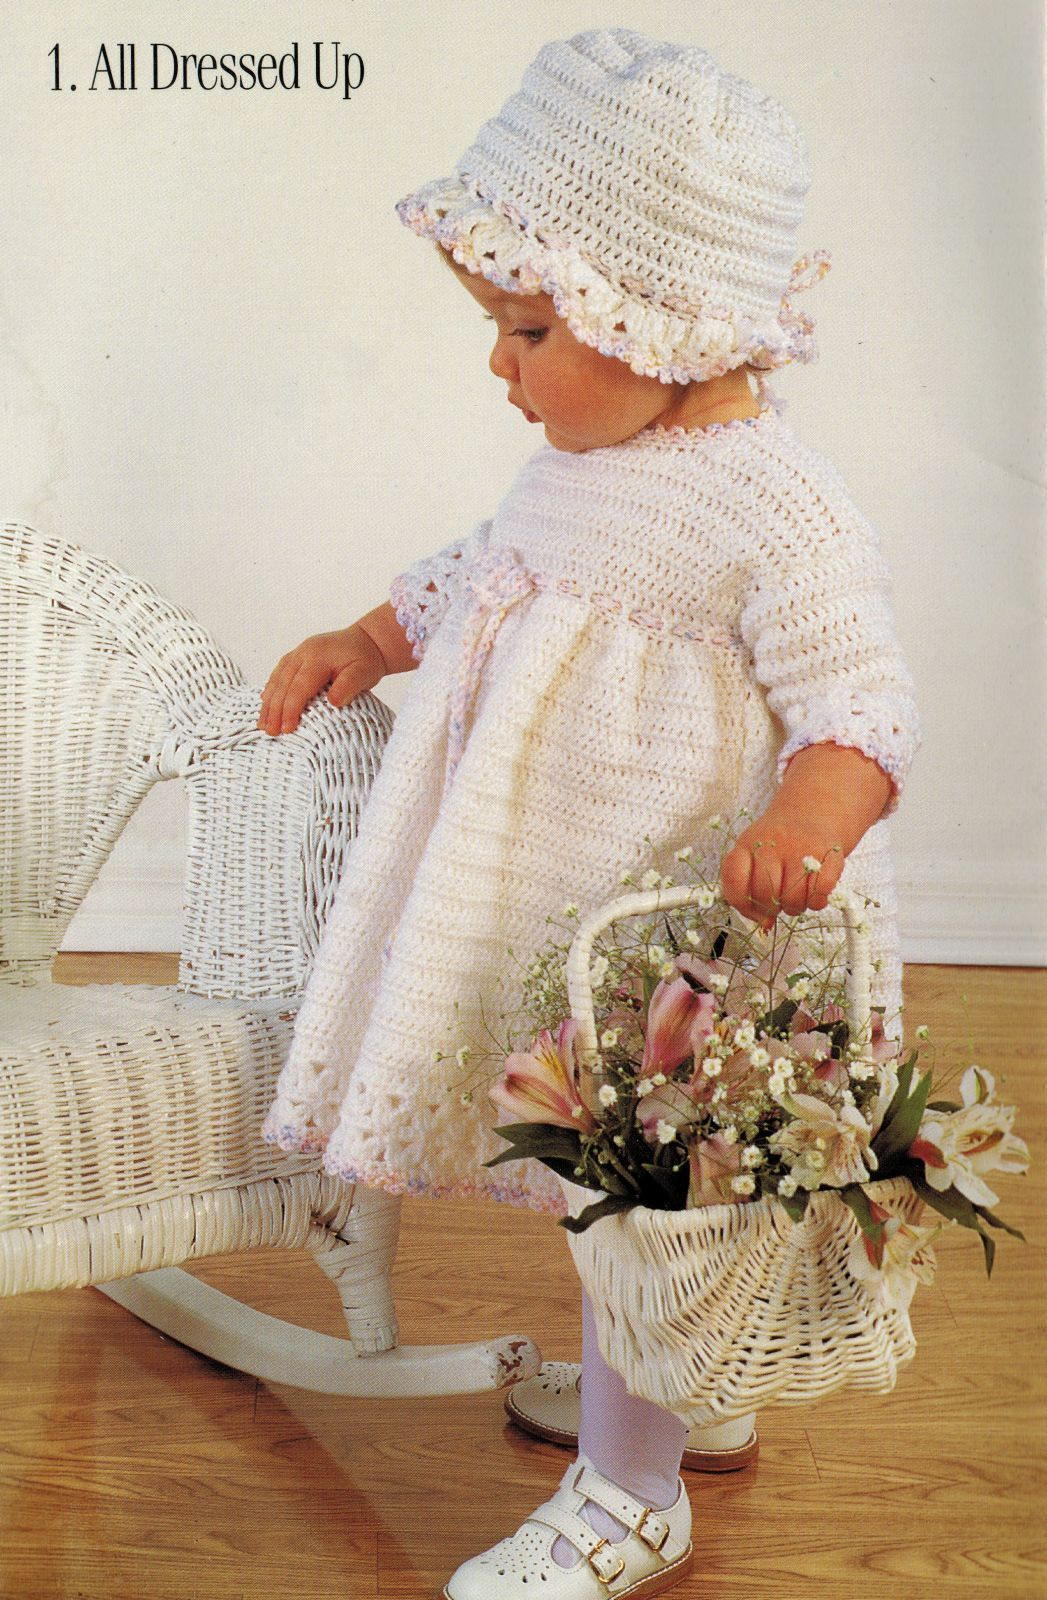 Primary image for Knit Crochet Baby Dress Mop Hat Mitts Bootie Cardigan Blanket Patterns NB-24 M